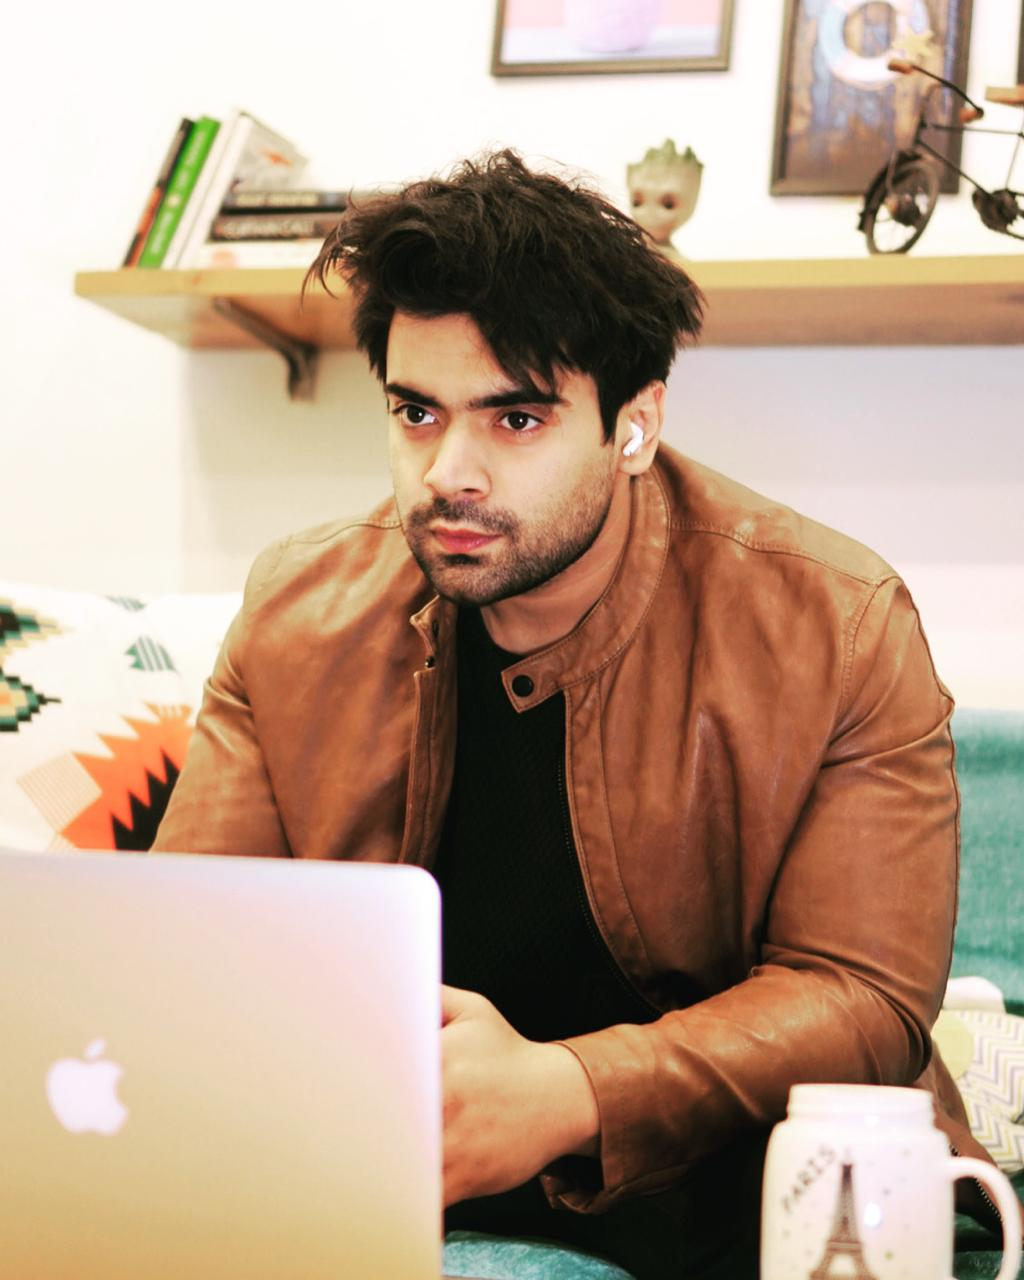 No limits to Ambition! Himanshu Gaur on his way to success